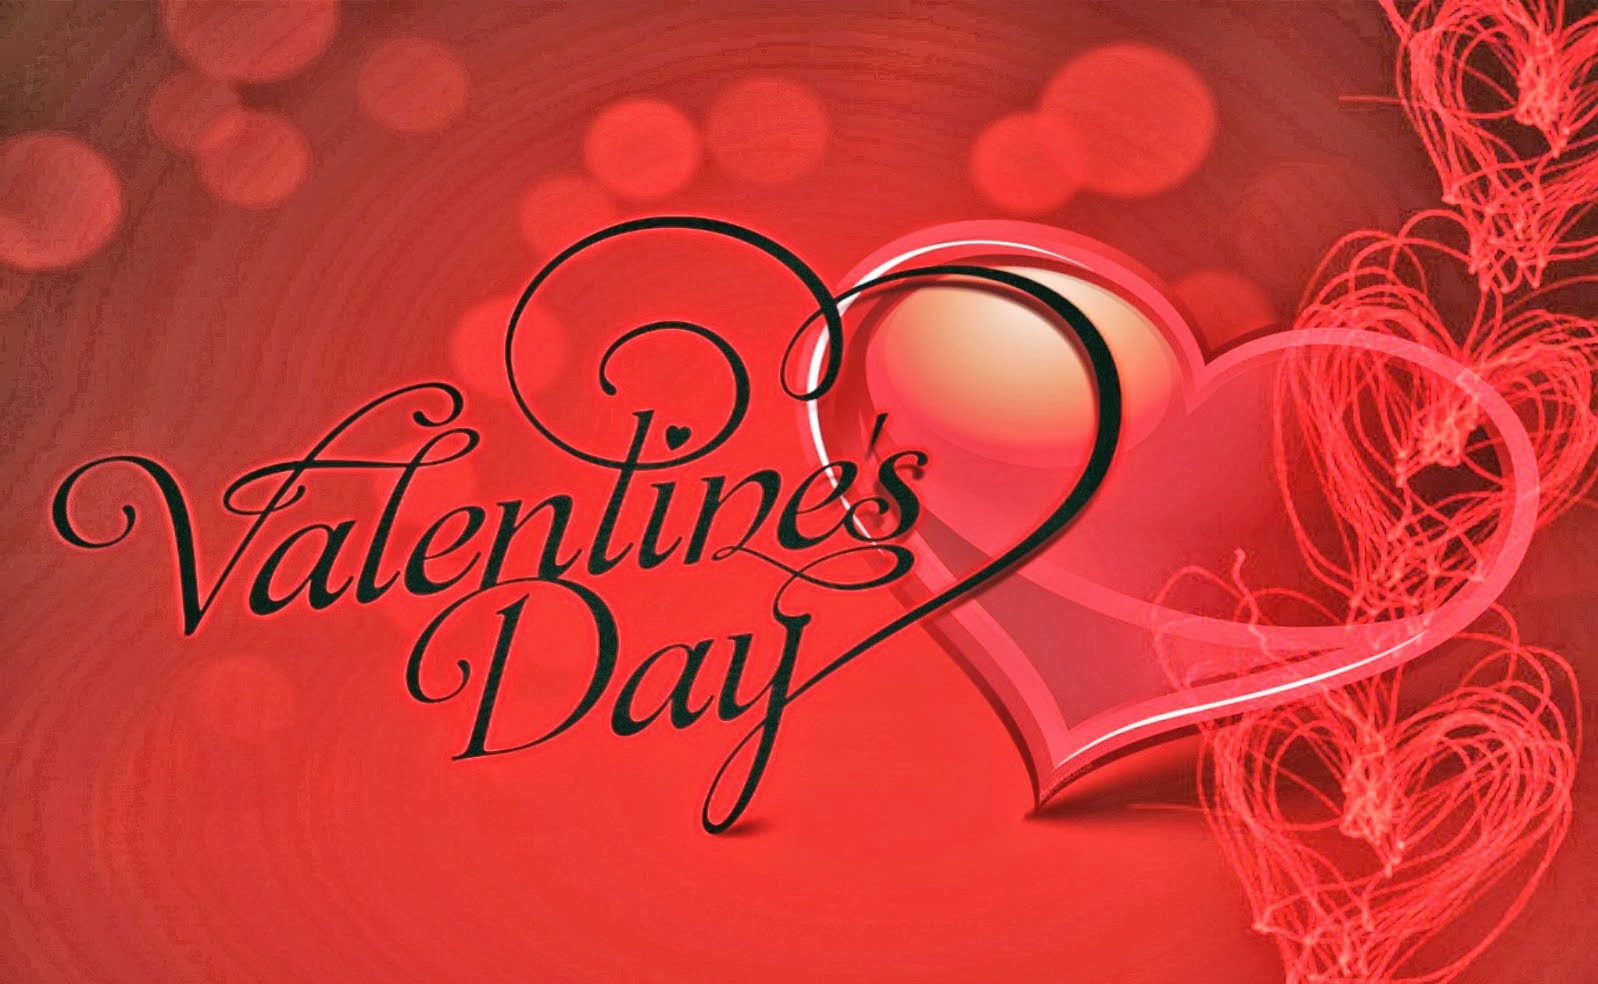 Happy Valentines Day! | Old Town Trolley Tours Blog